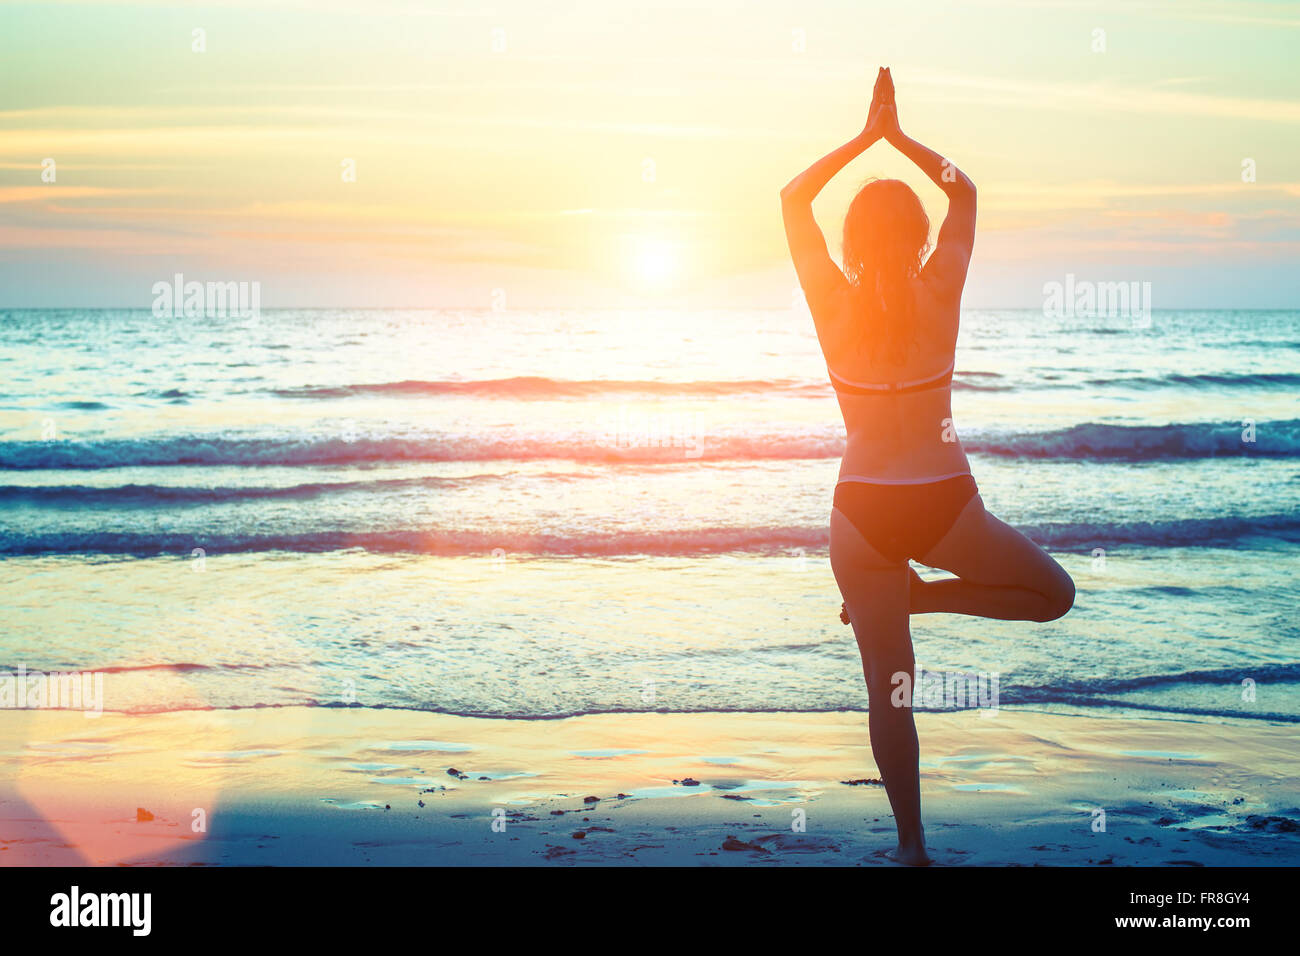 Silhouette yoga woman on the beach at sunset. - Stock Image